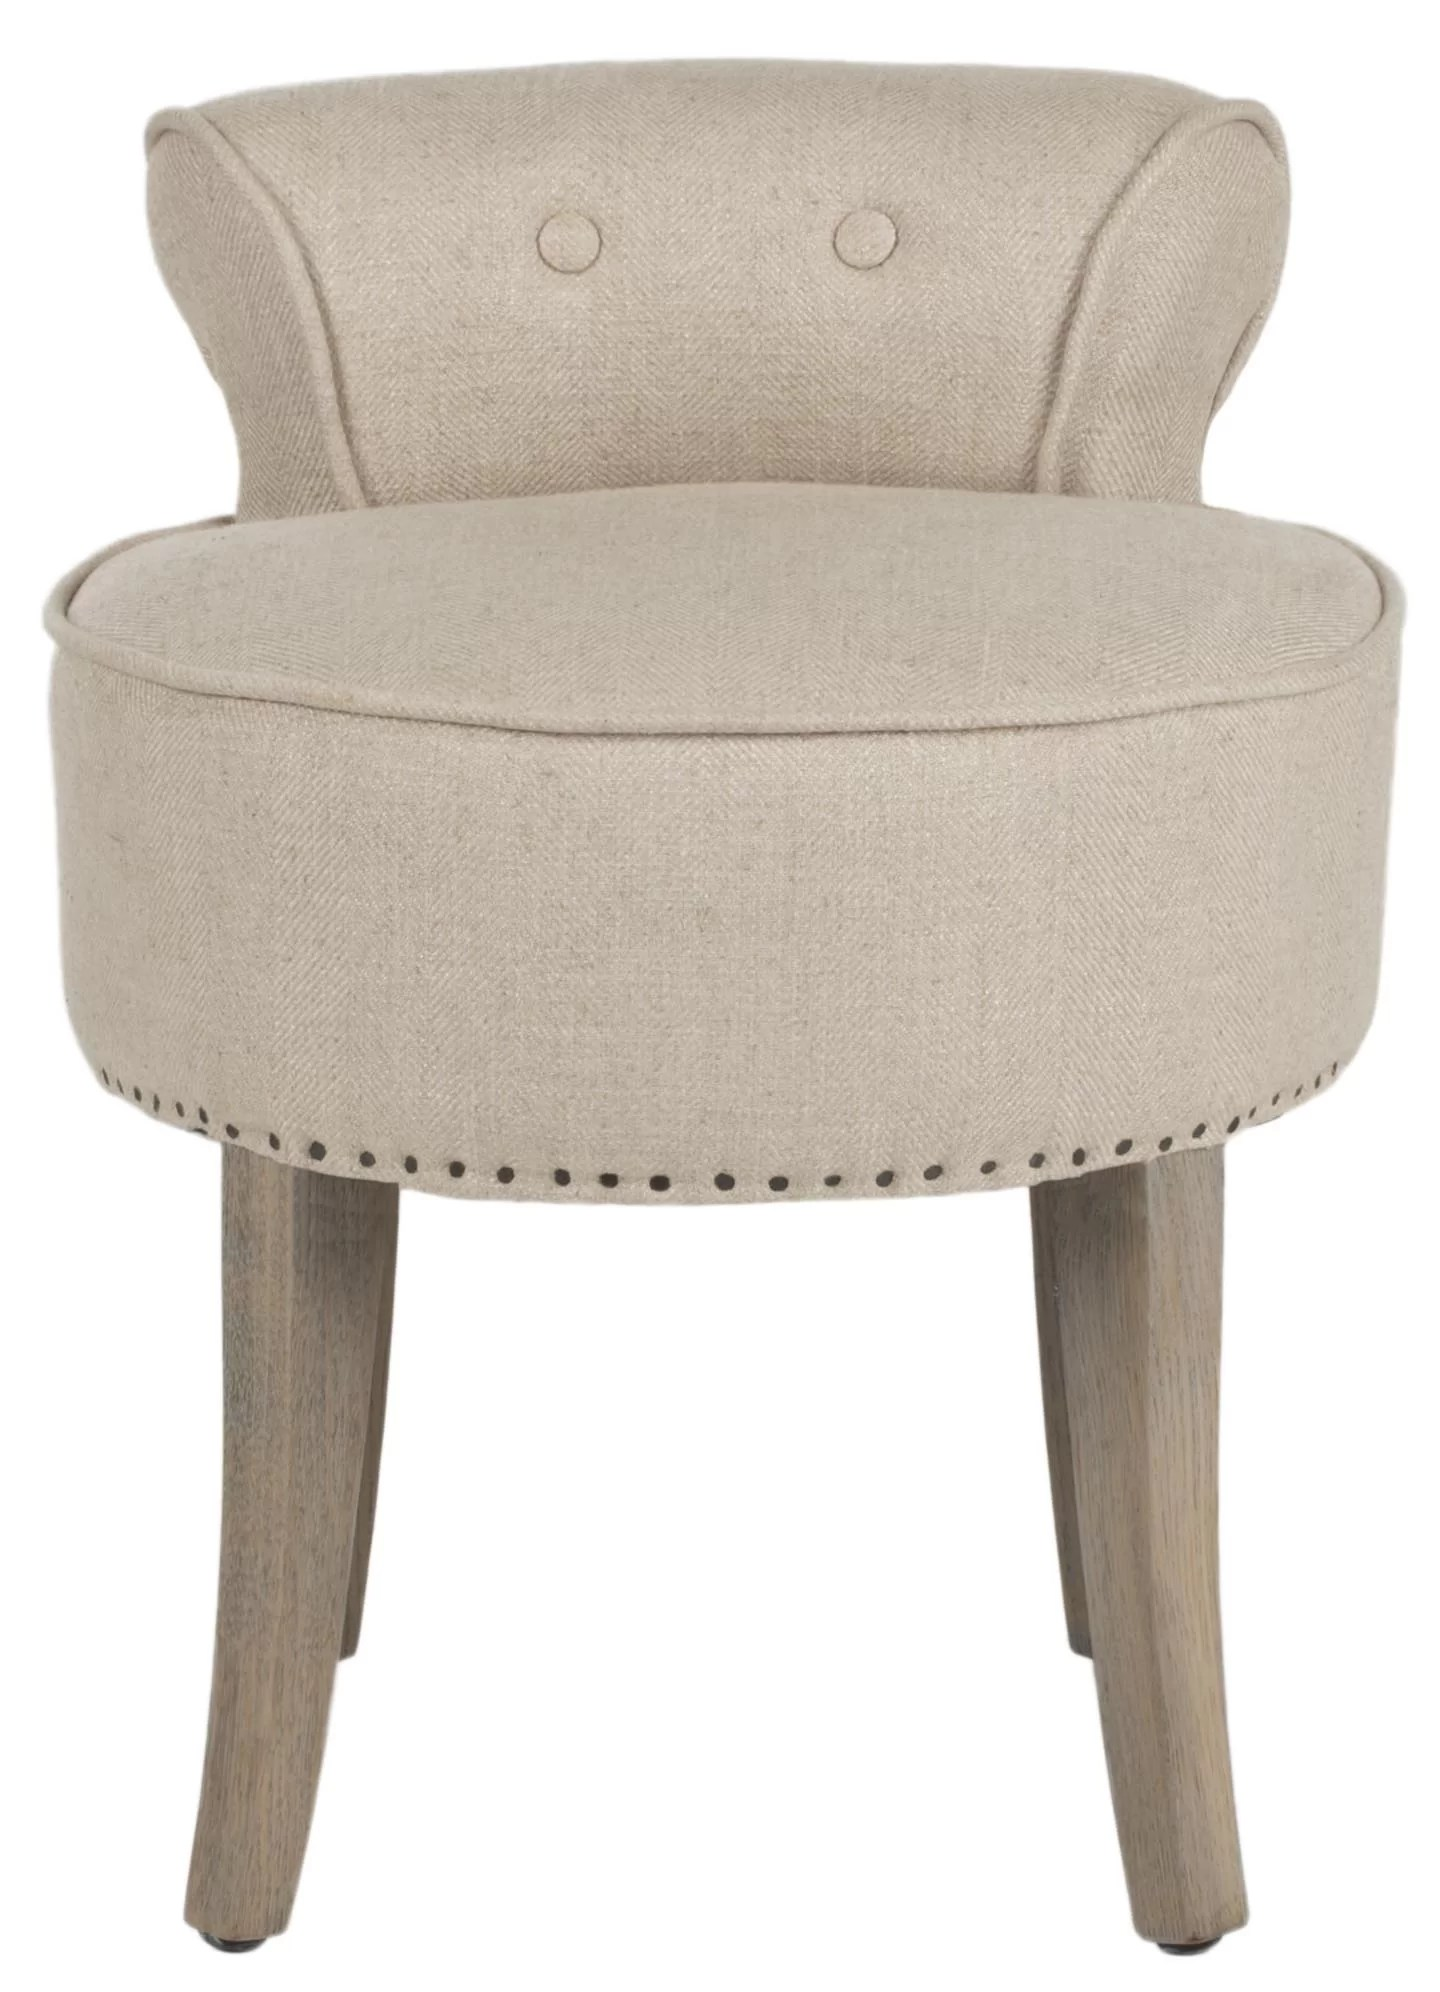 Tufted Vanity Chair Amel Vanity Stool